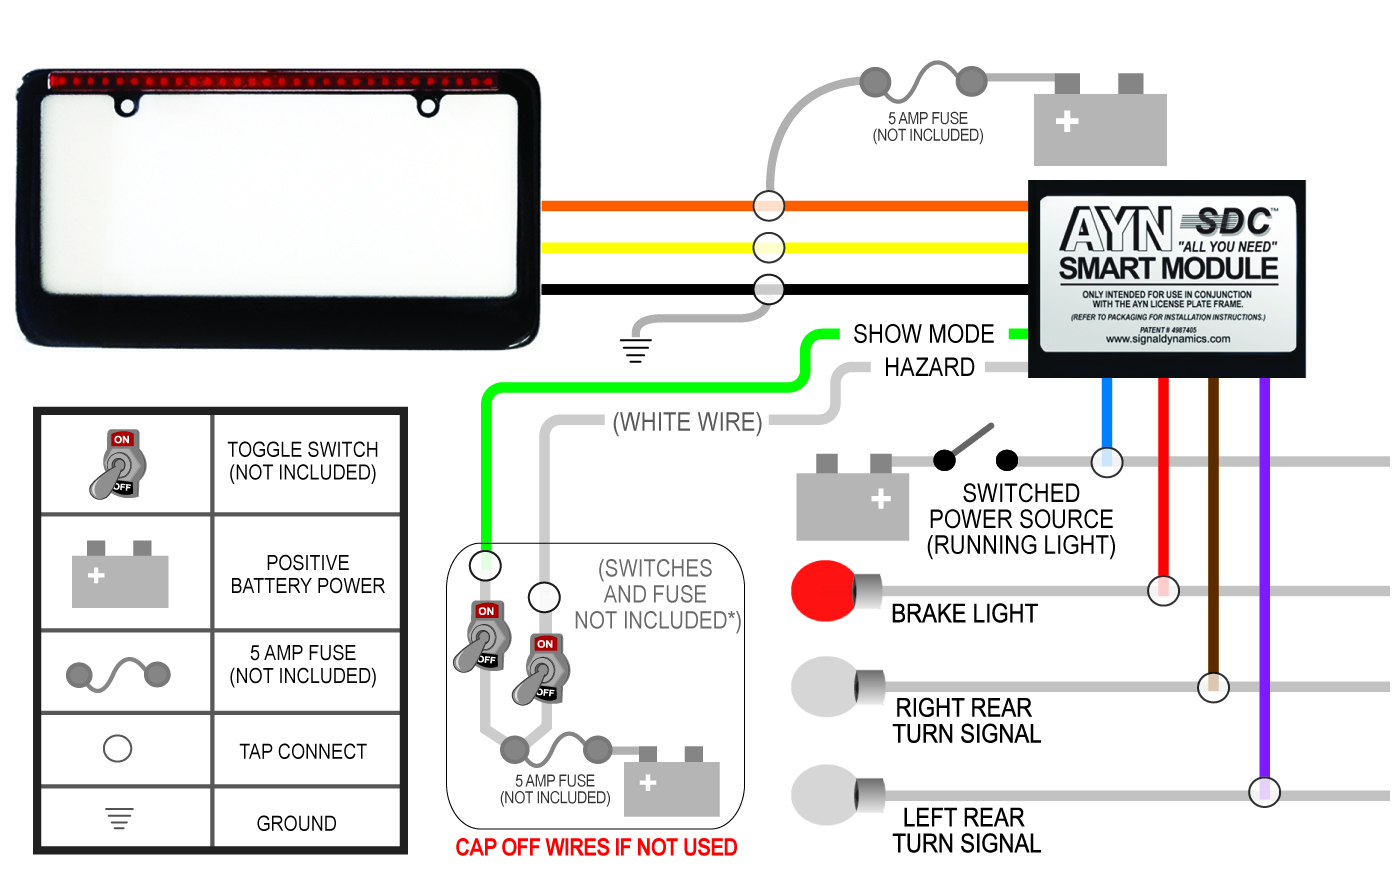 black auto wiring diagram?t=1399476781 black ayn automotive license plate frame & smart module combo Basic Turn Signal Wiring Diagram at edmiracle.co